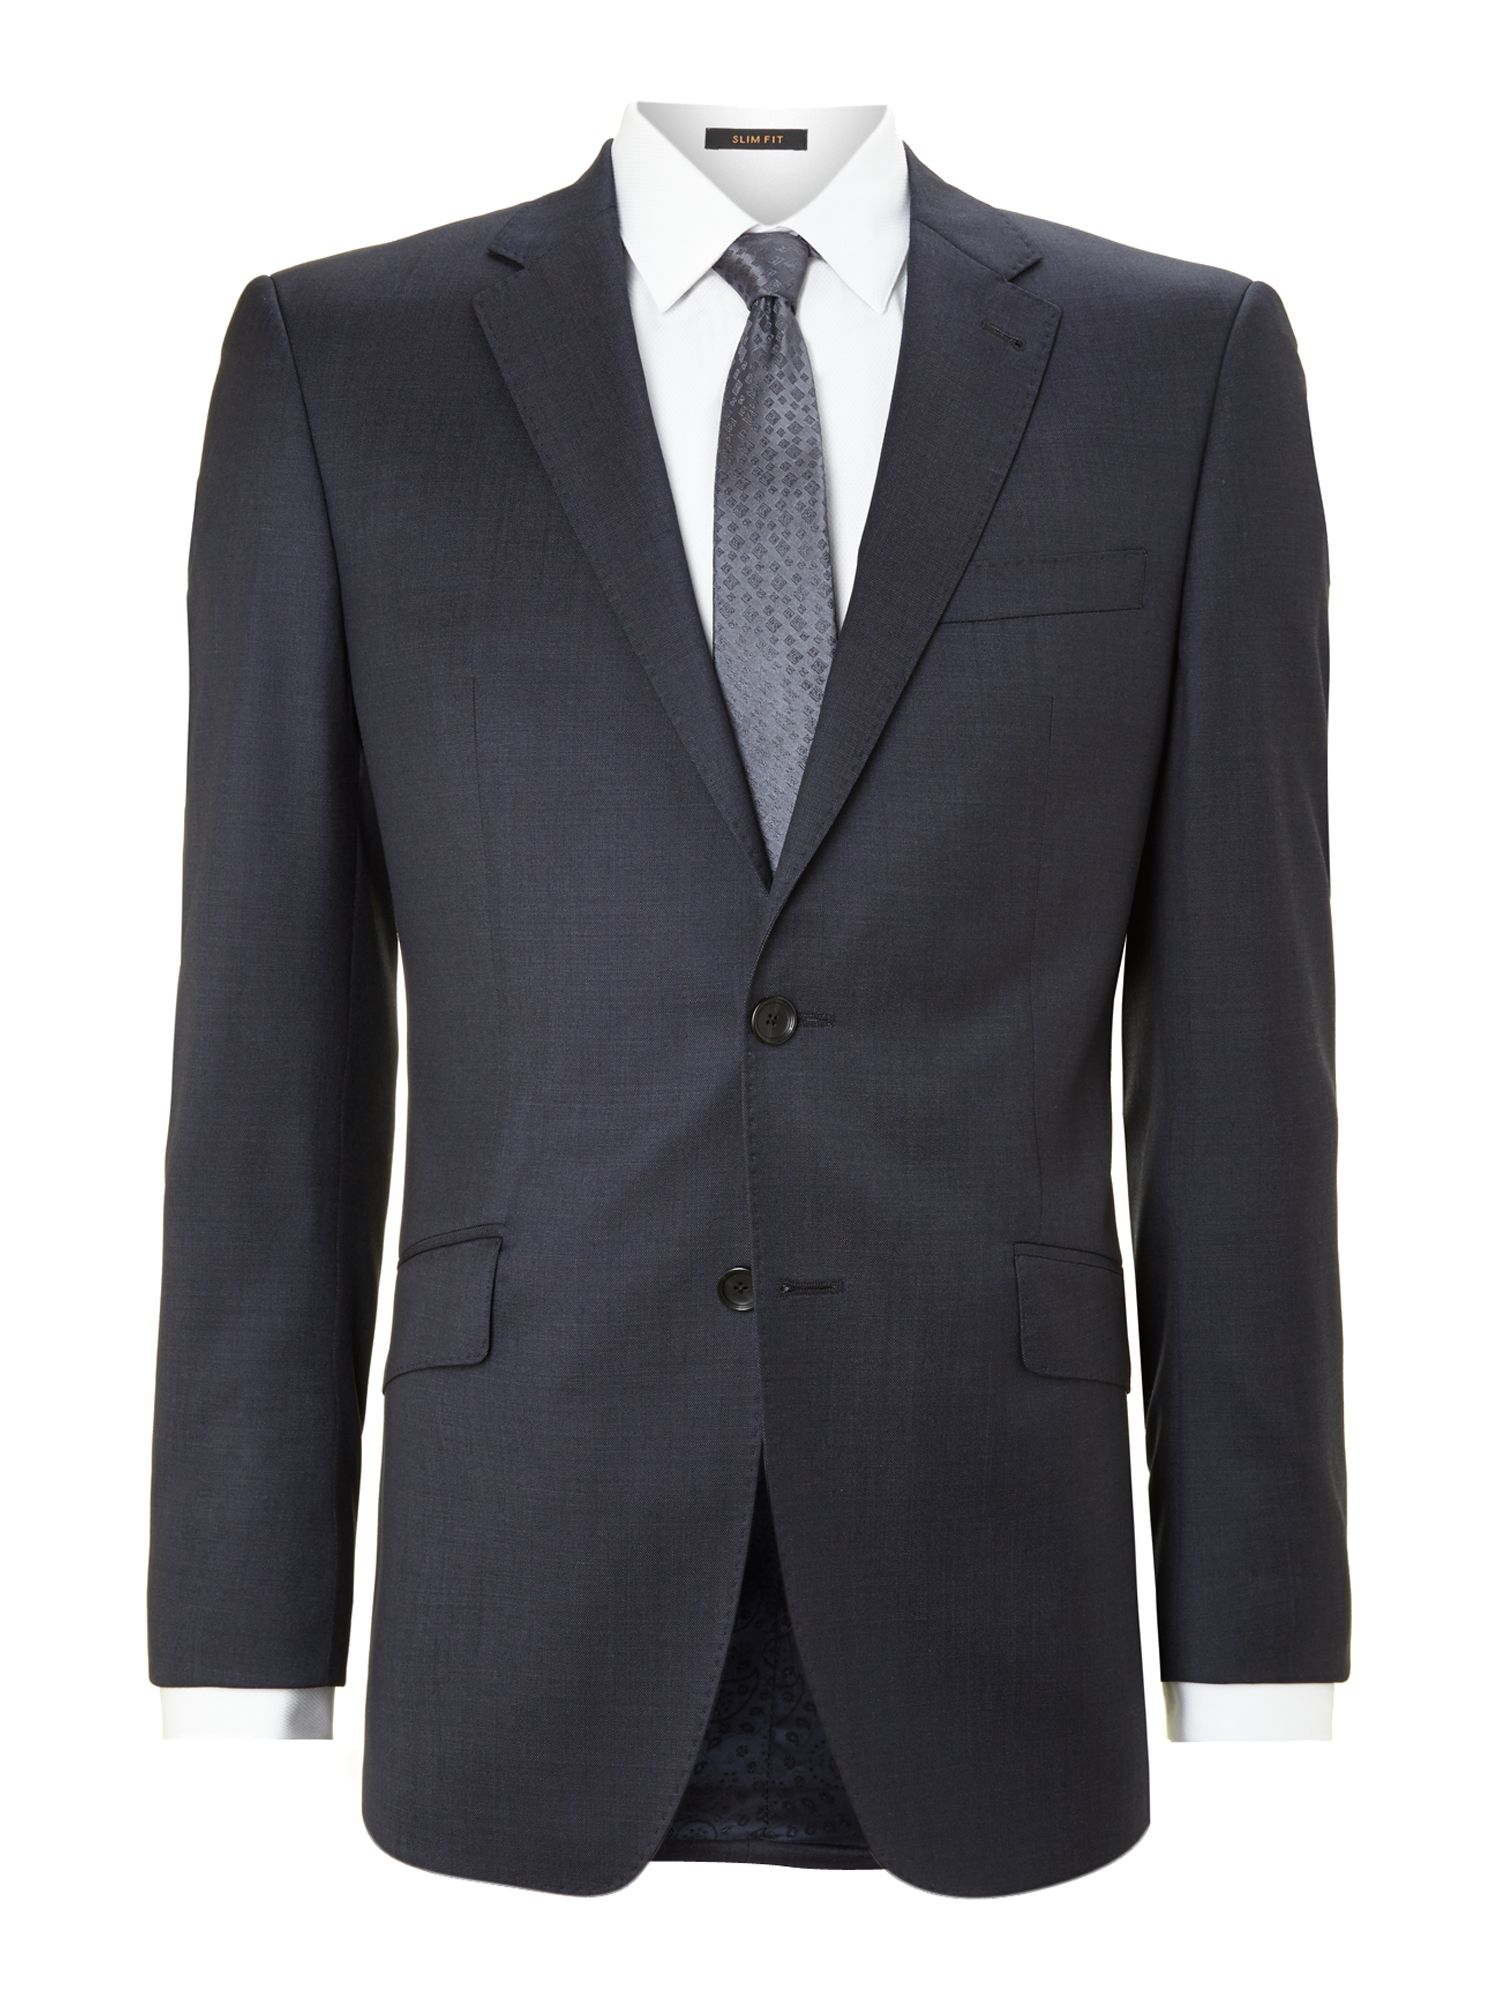 Pindot regular fit suit jacket